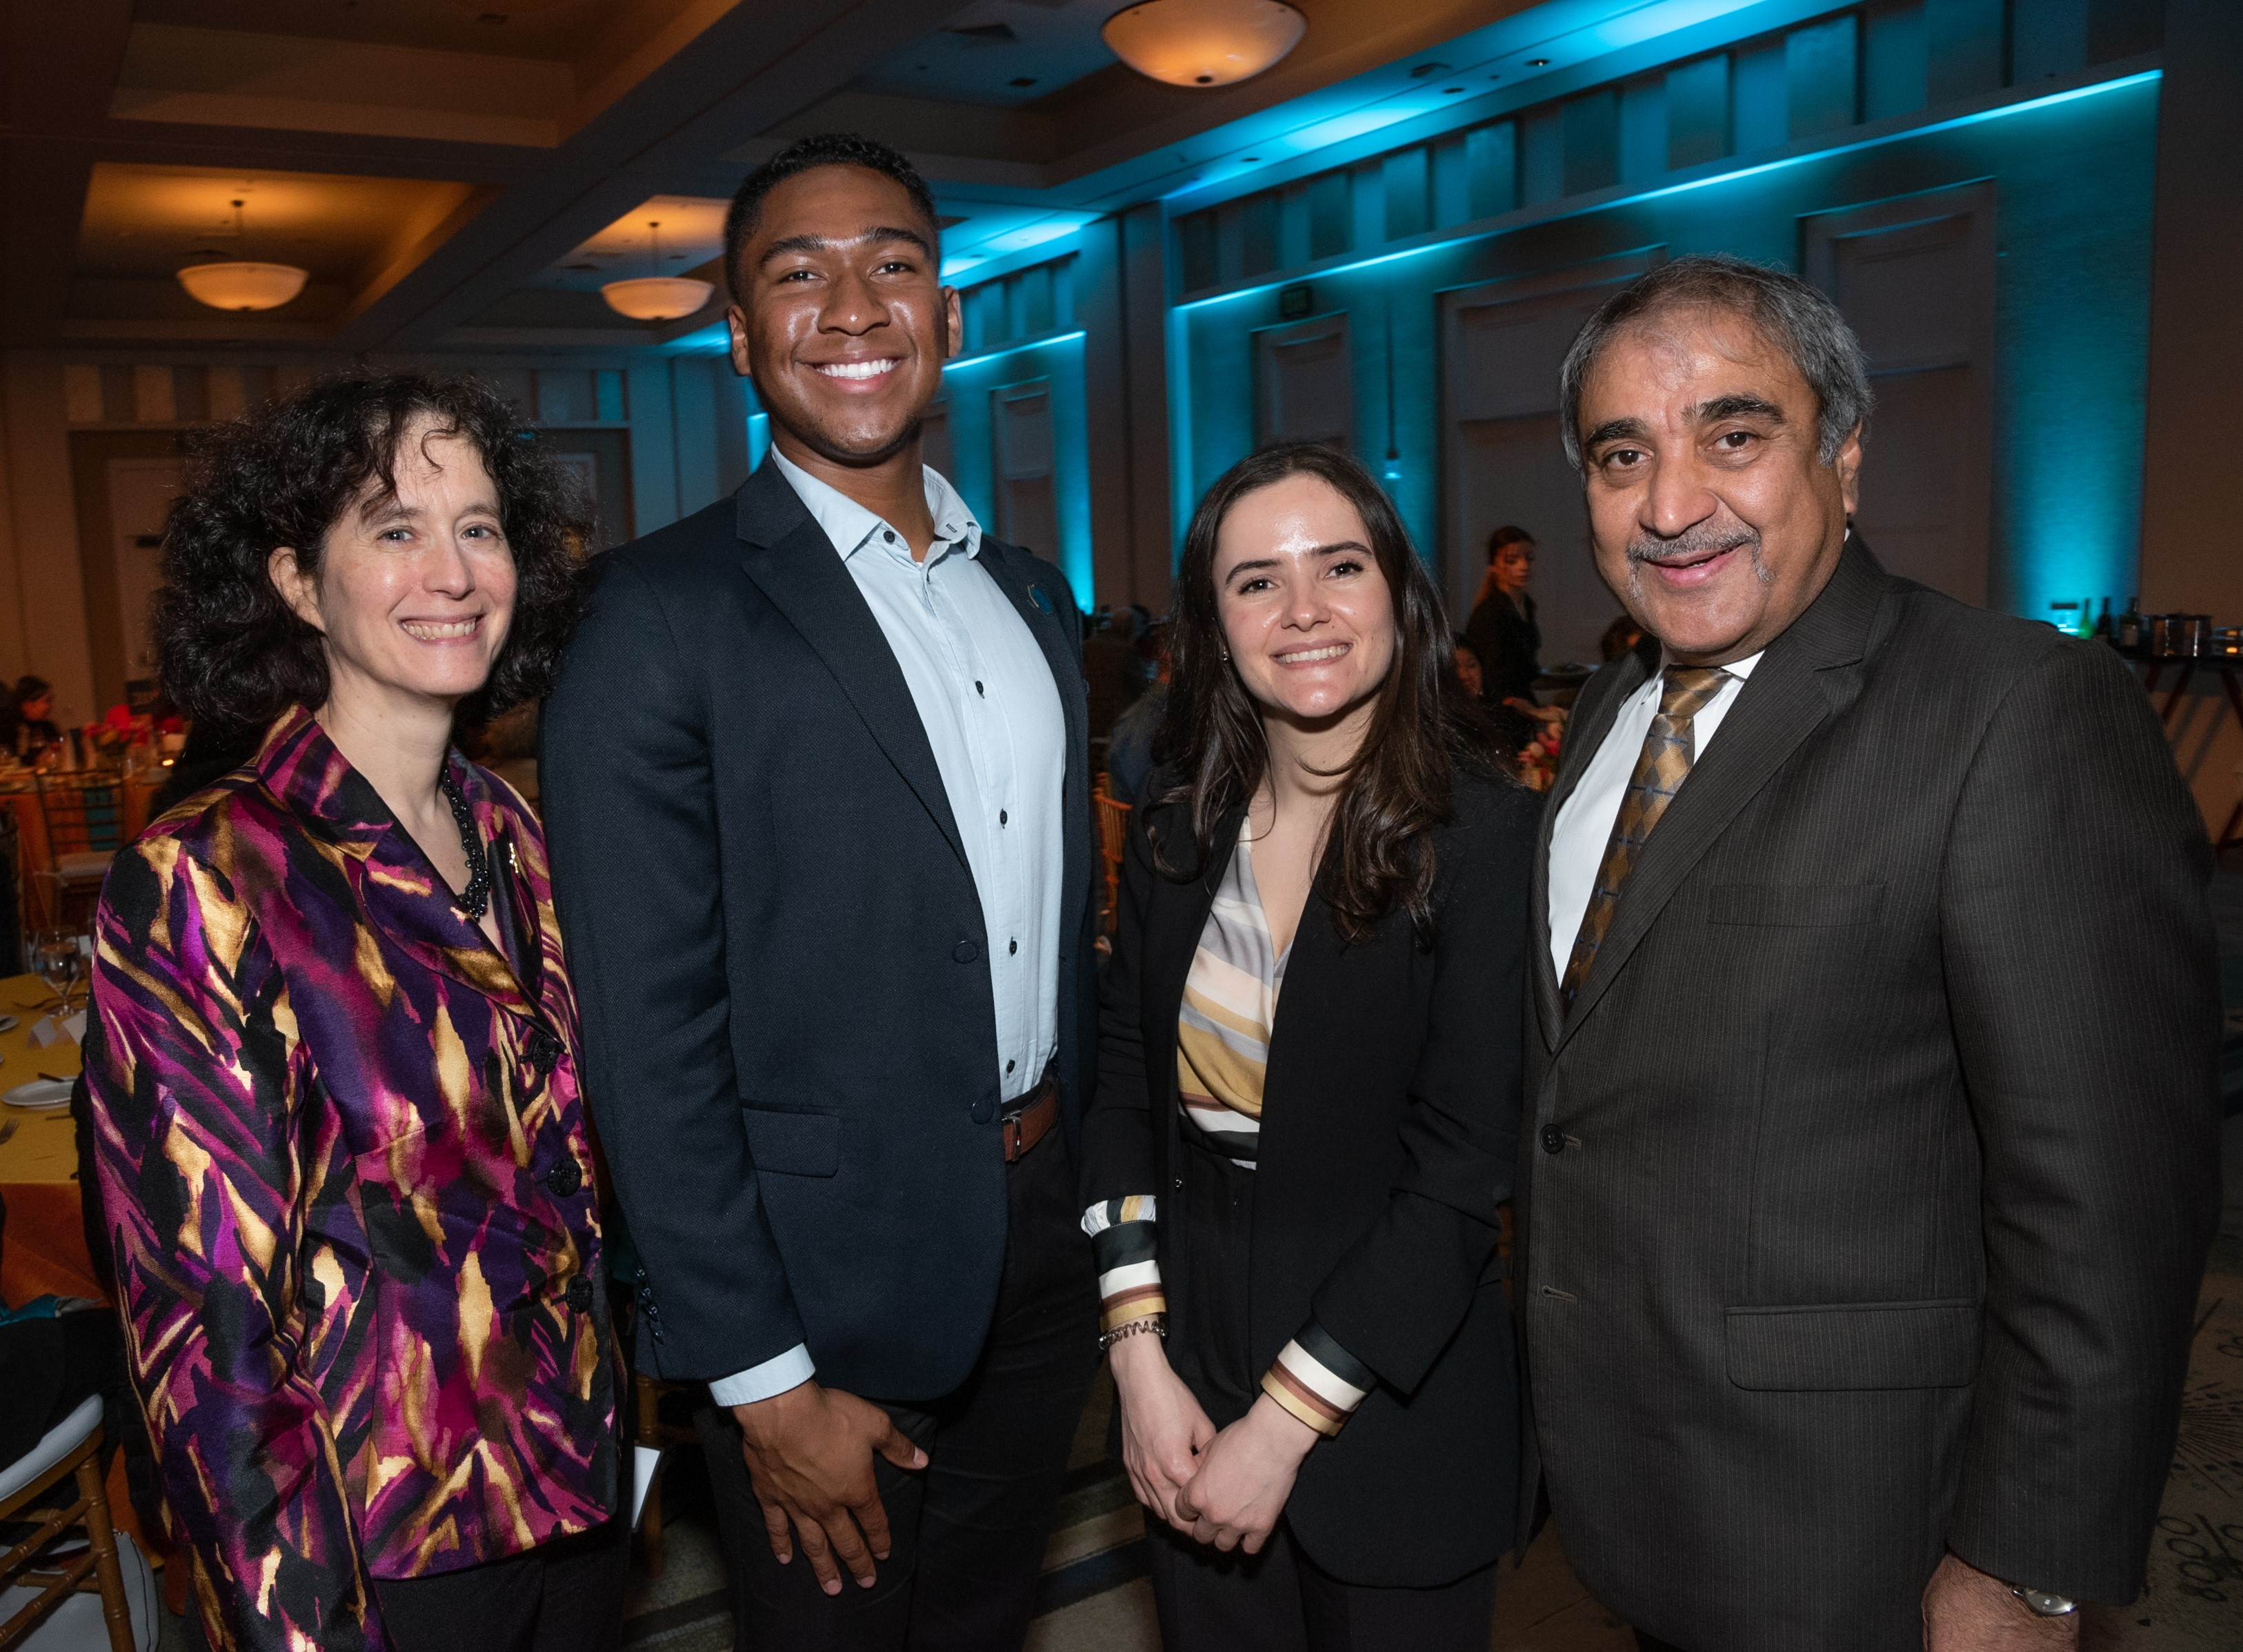 Executive Vice Chancellor Elizabeth Simmons; David Anyakora, Revelle College '22; Albana Bakaj, Eleanor Roosevelt College '20; and Chancellor Khosla at the 2020 Hearts and Scholars Dinner